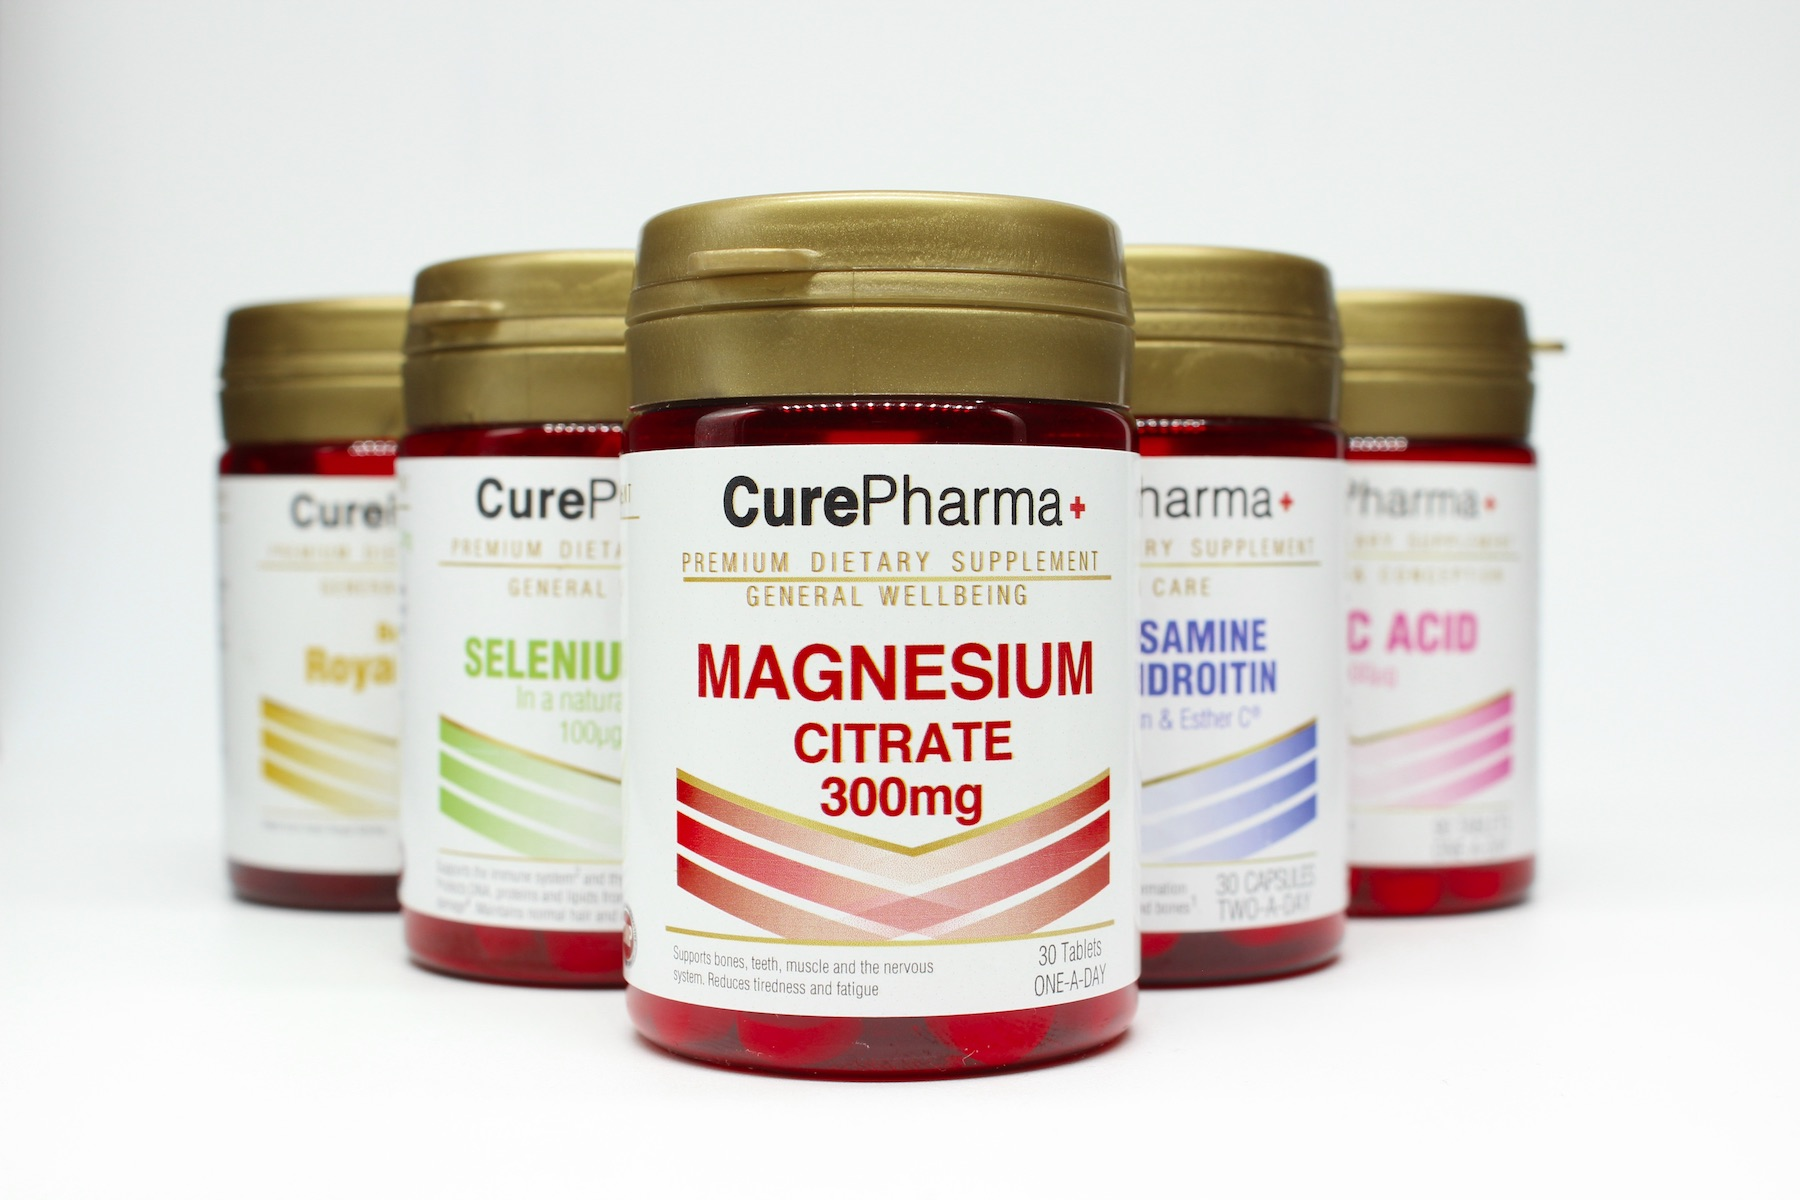 CurePharma Supplements Image